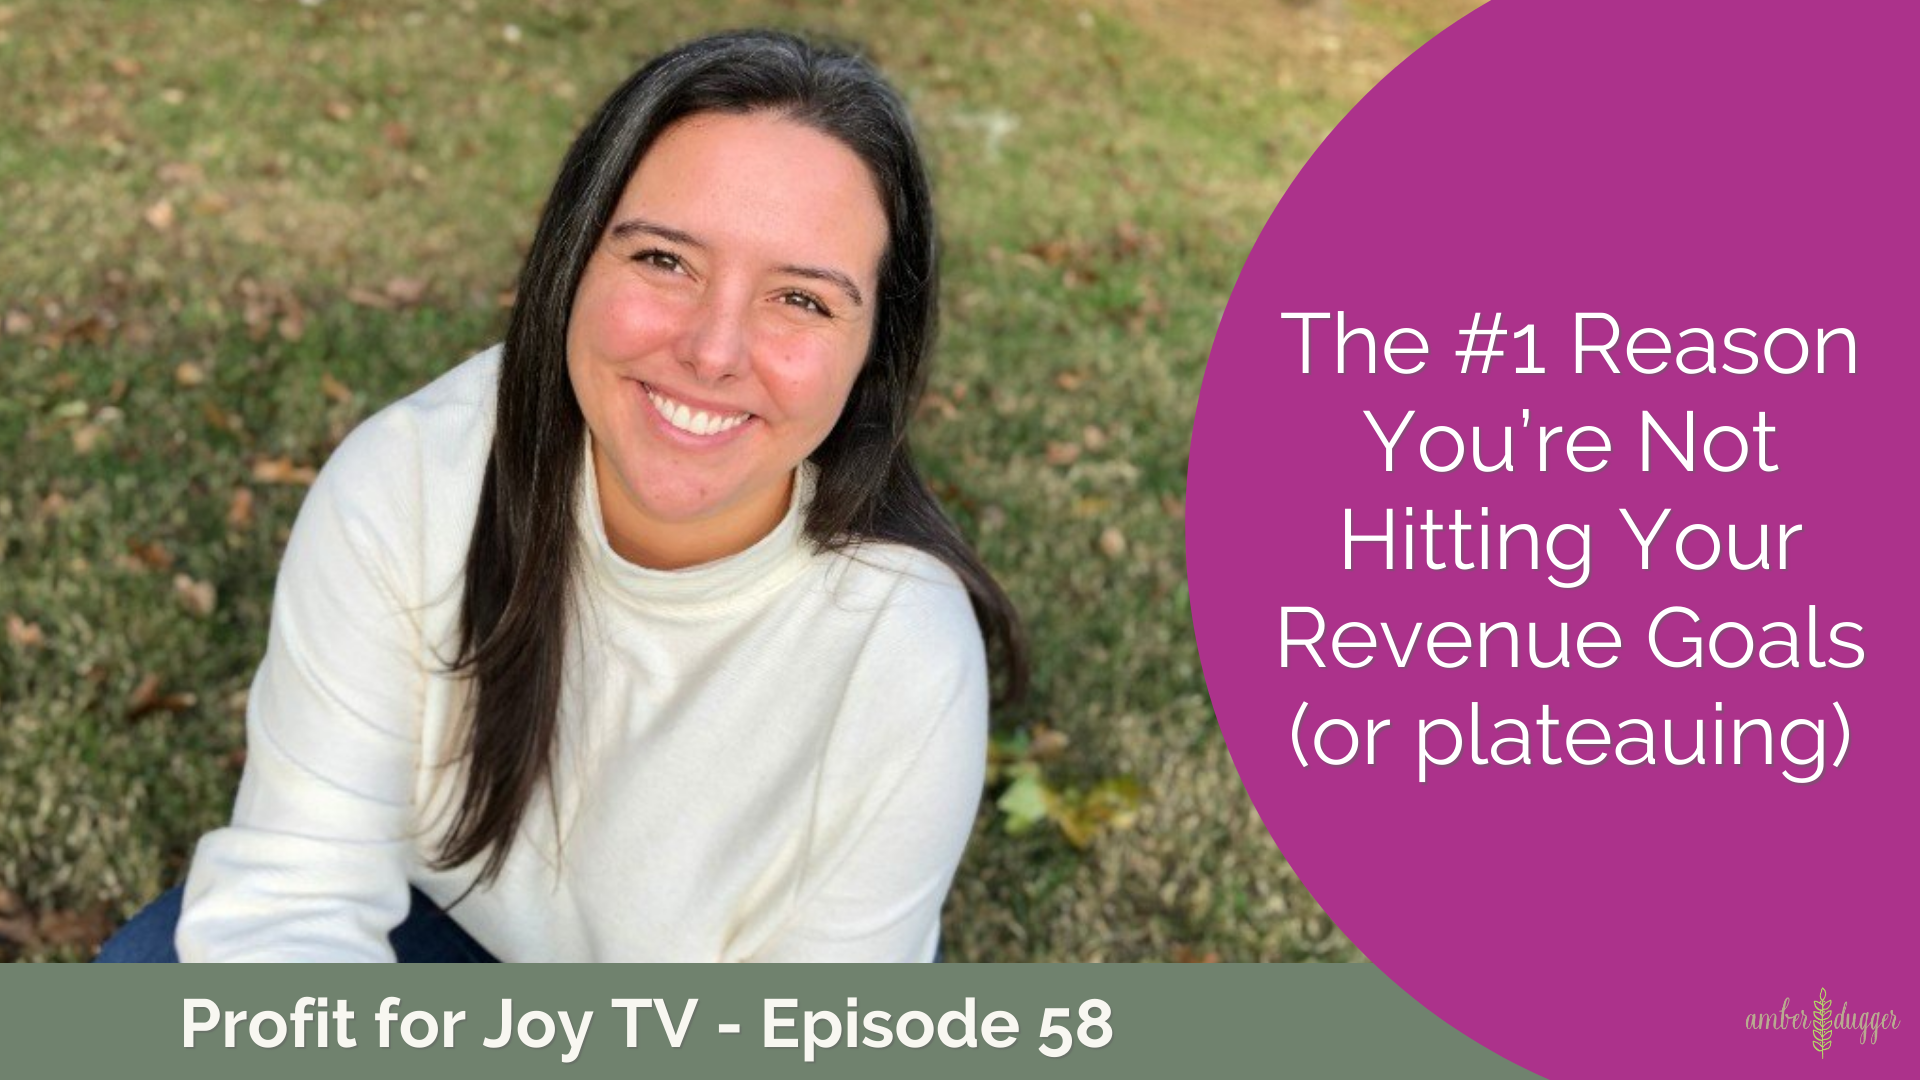 The #1 Reason You're Not Hitting Your Revenue Goals (or plateauing)